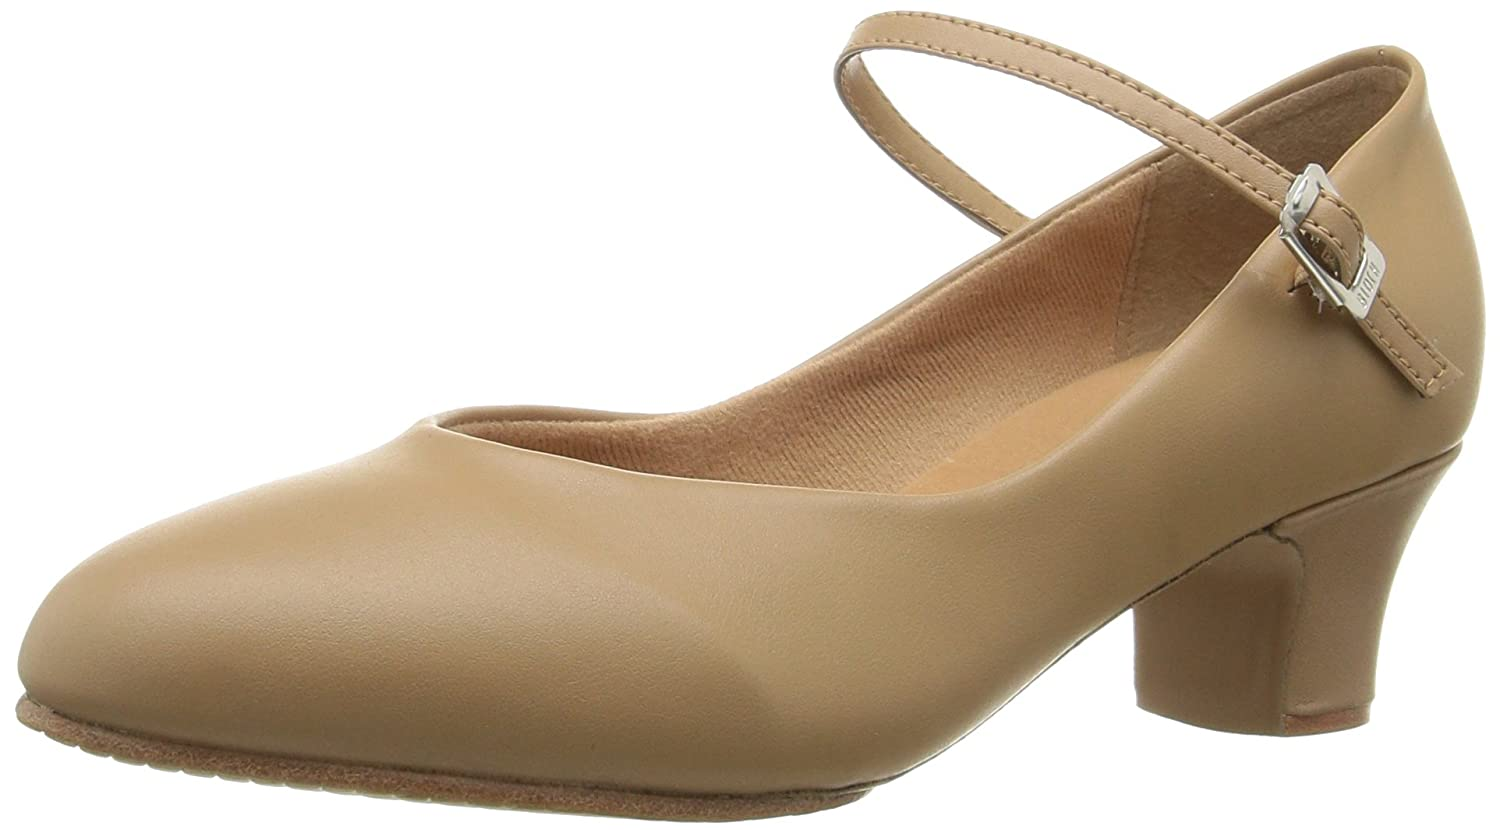 Bloch Dance B00PB45K5A Women's Broadway Lo Character Shoe B00PB45K5A Dance 11 W US|Tan 953e93